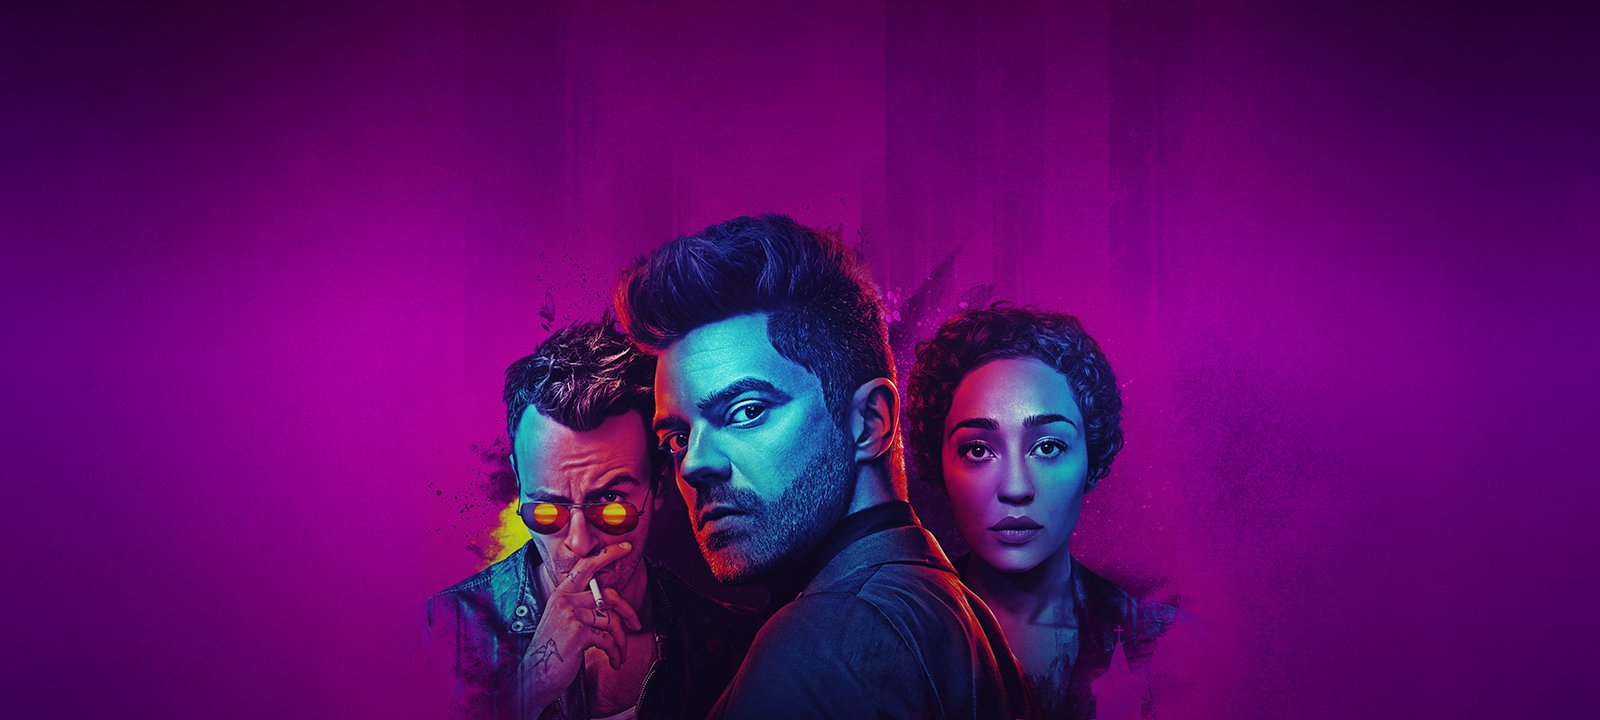 preacher-featured.jpg